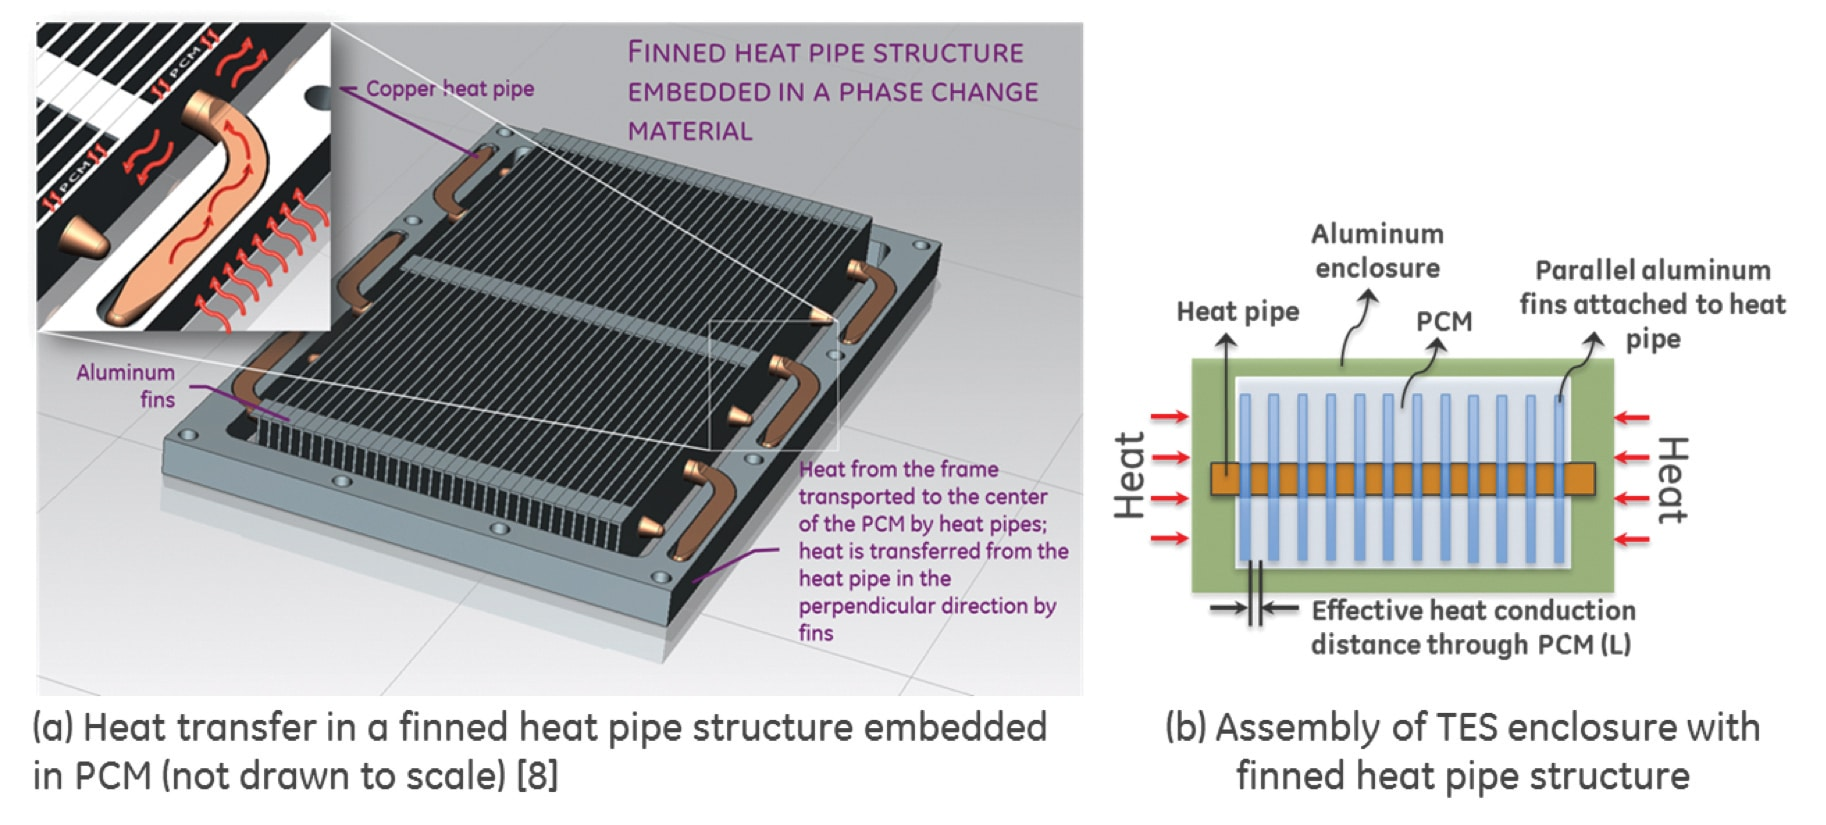 A Novel Approach To Development Of Thermal Capacitor Electronics Piping Layout Heat Exchanger Figure 2 Schematic Representation With Finned Pipe Structure